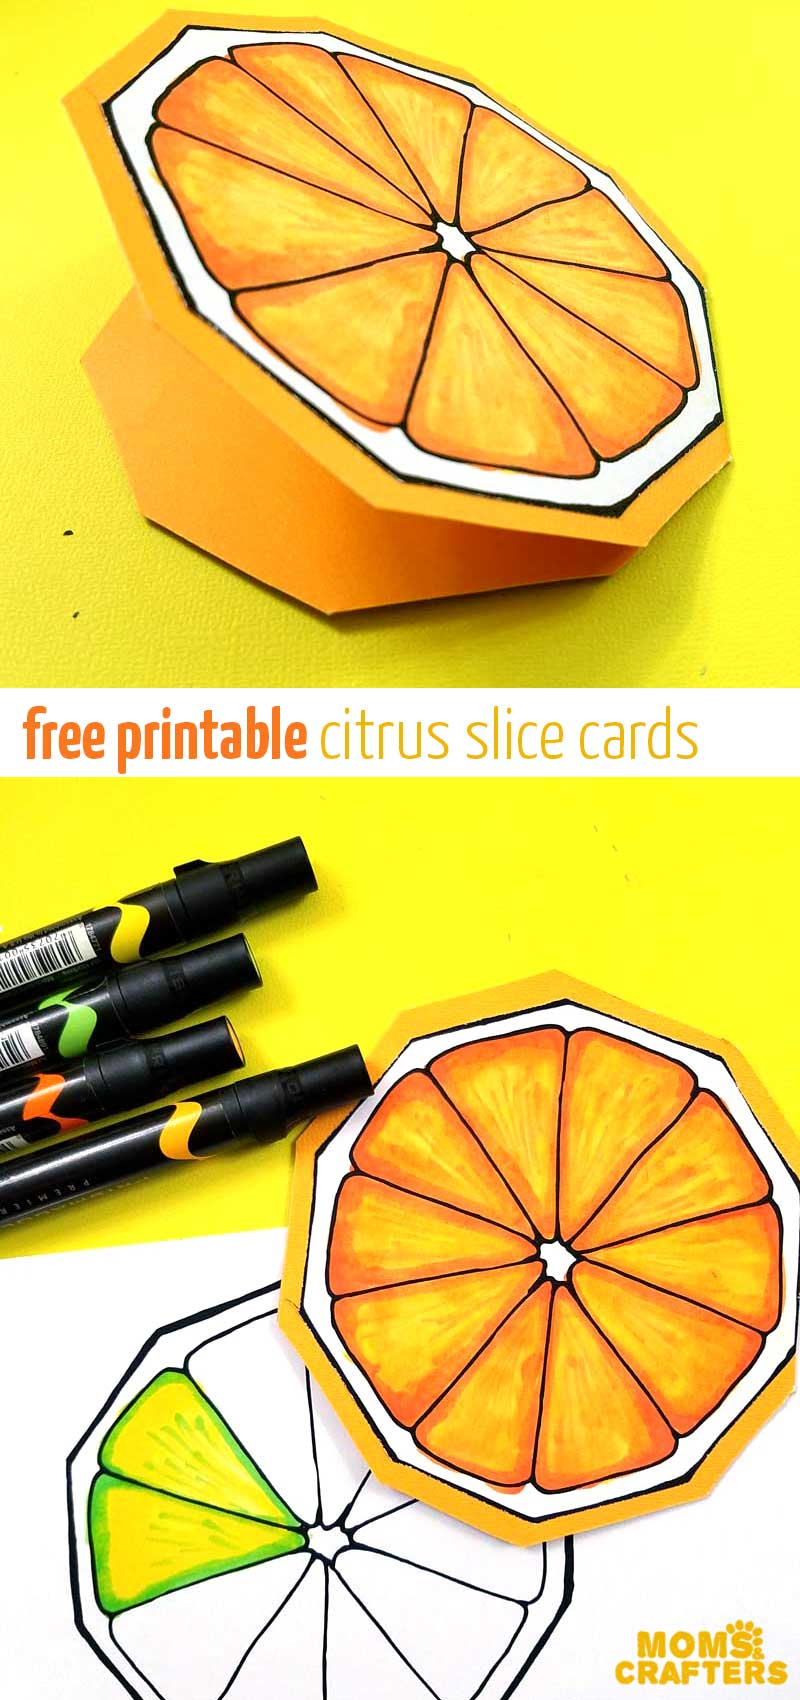 Fruit Cards - Color-in Citrus Slices - Moms and Crafters